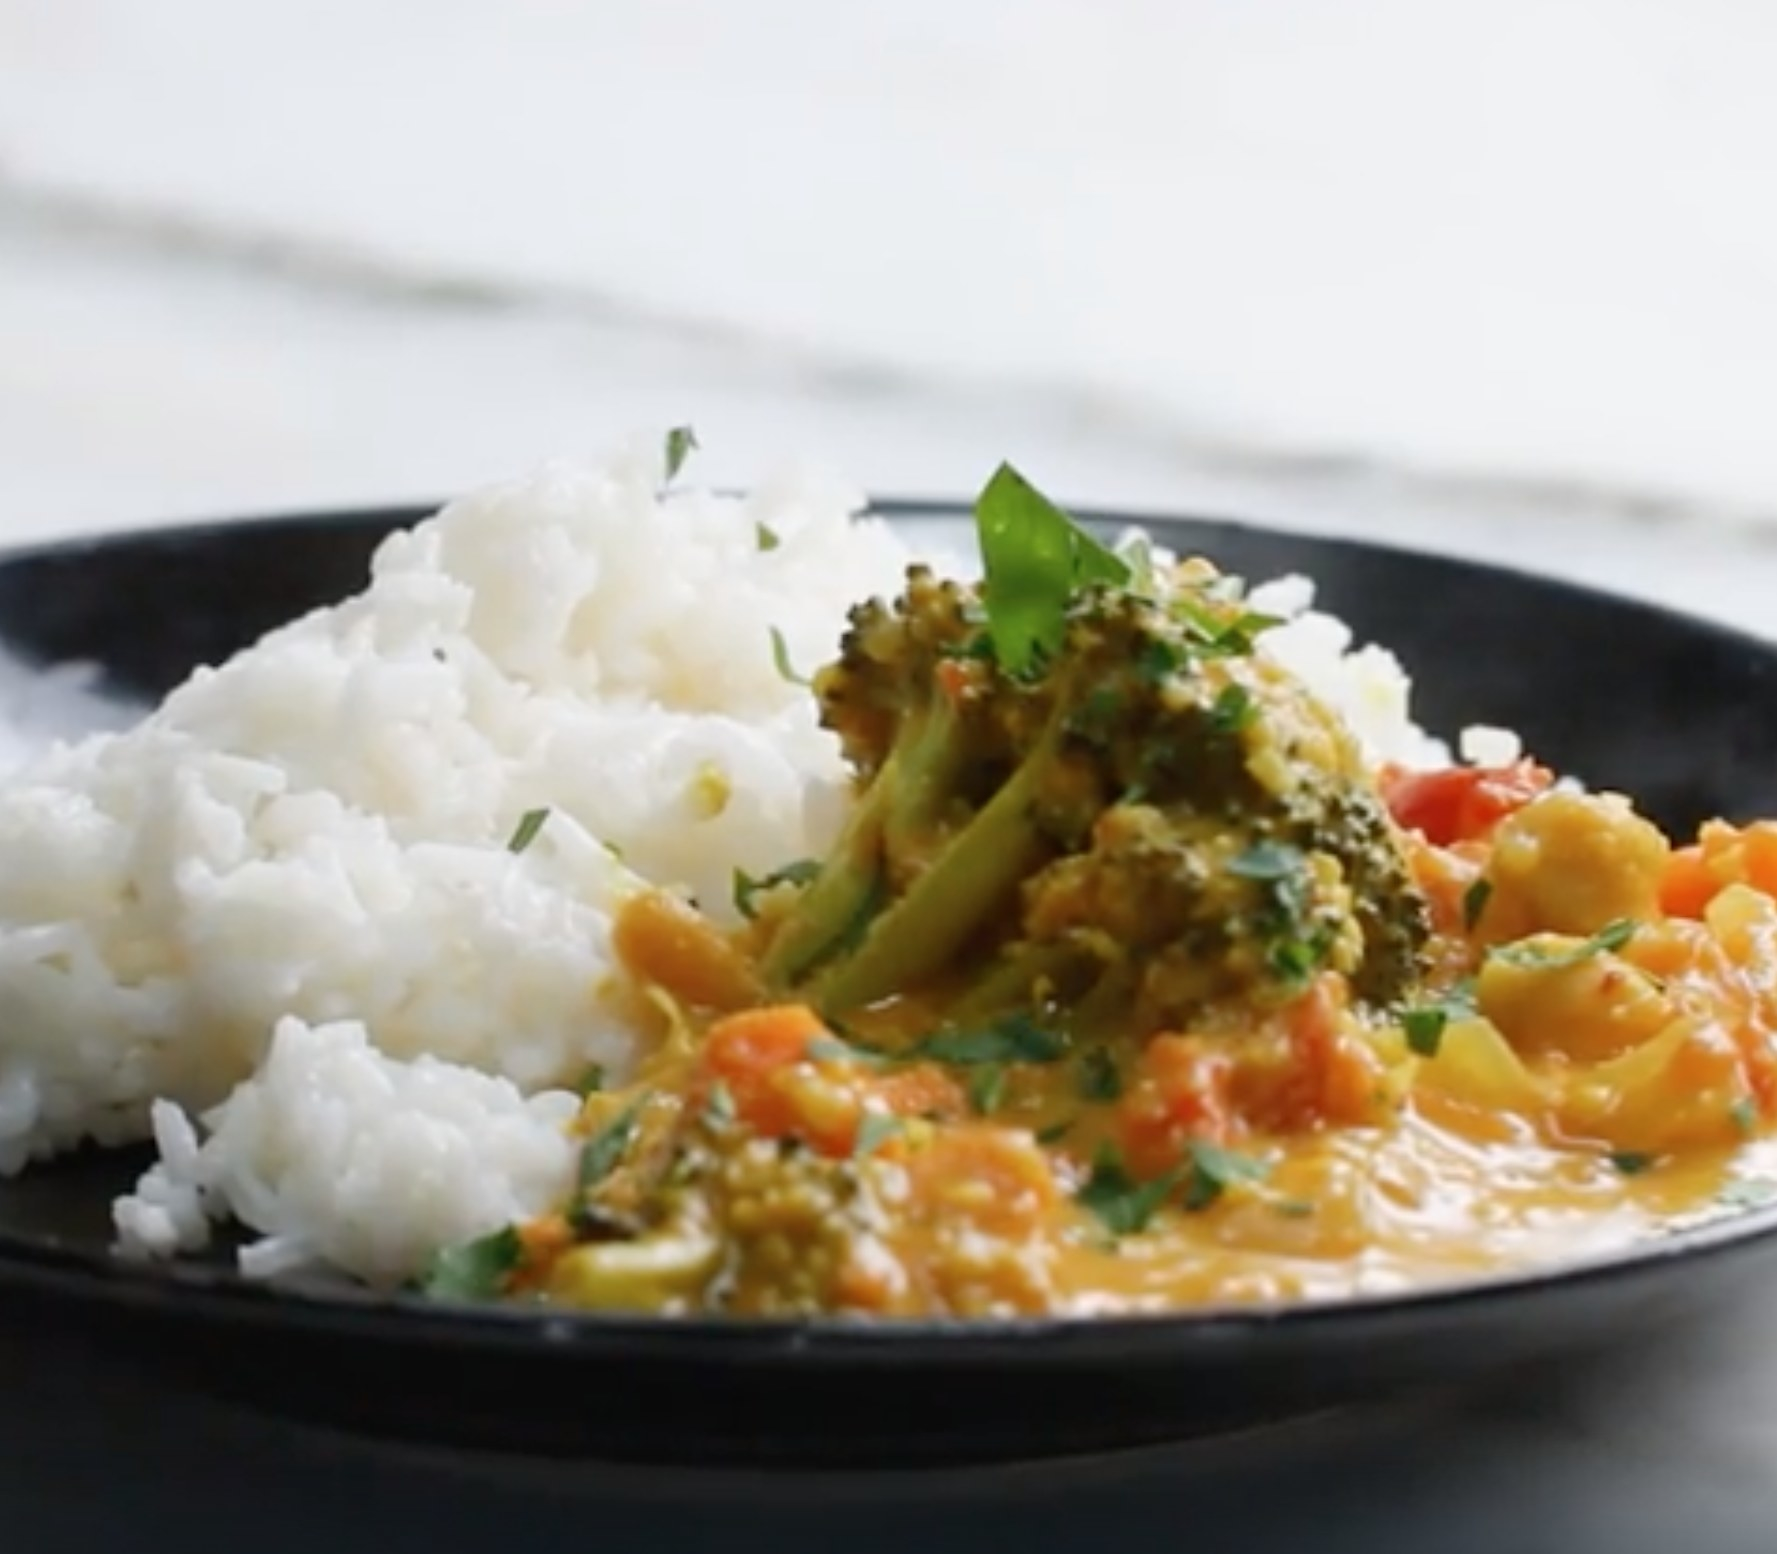 A bowl of coconut veggie curry with white rice